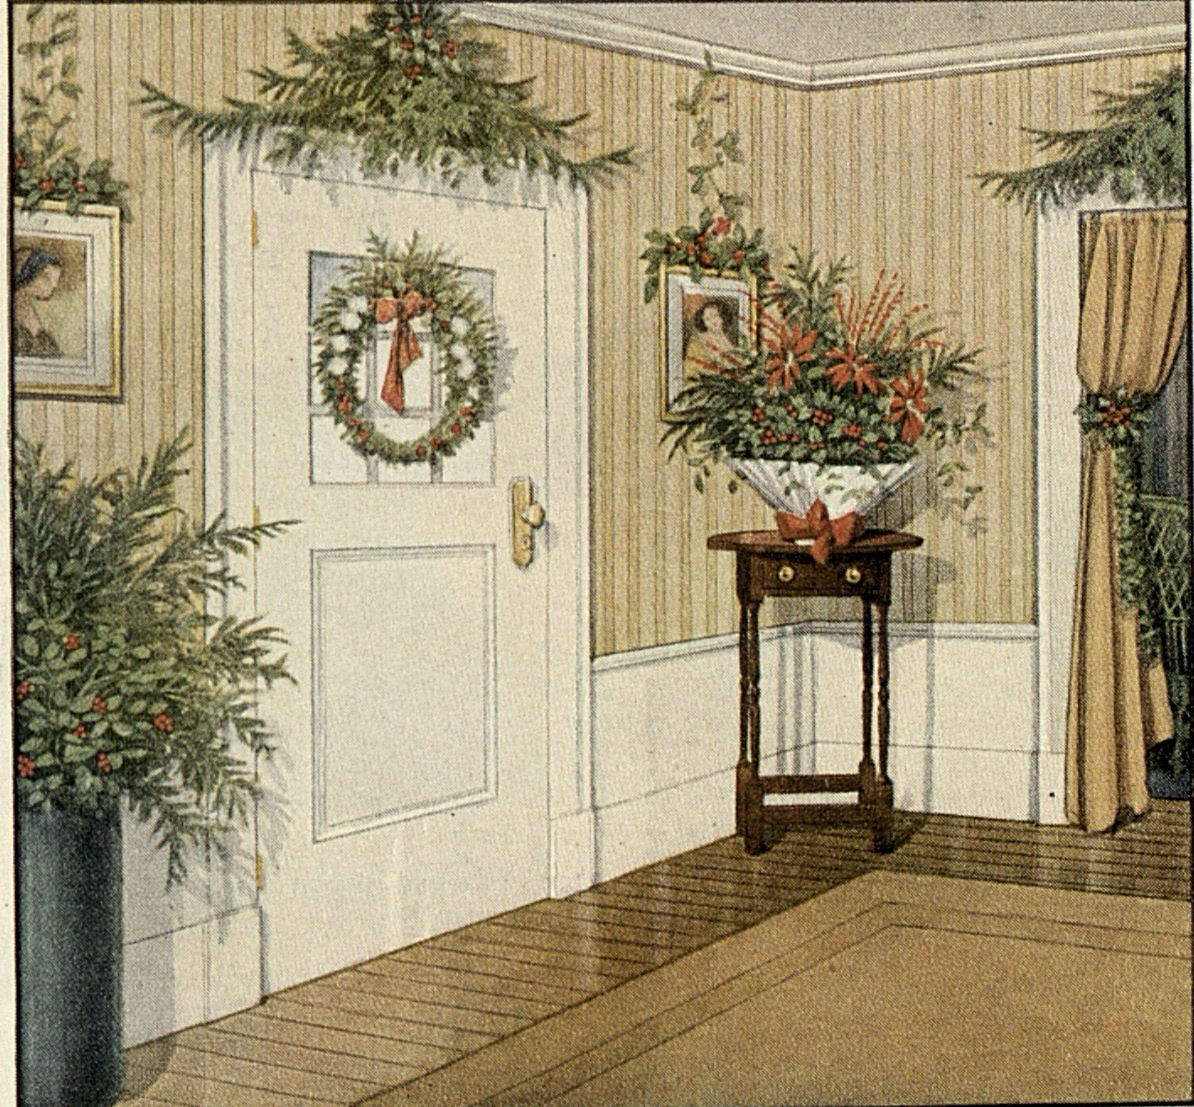 Old House Christmas Decorations: Old-Fashioned Christmas Greenery Decorating Ideas